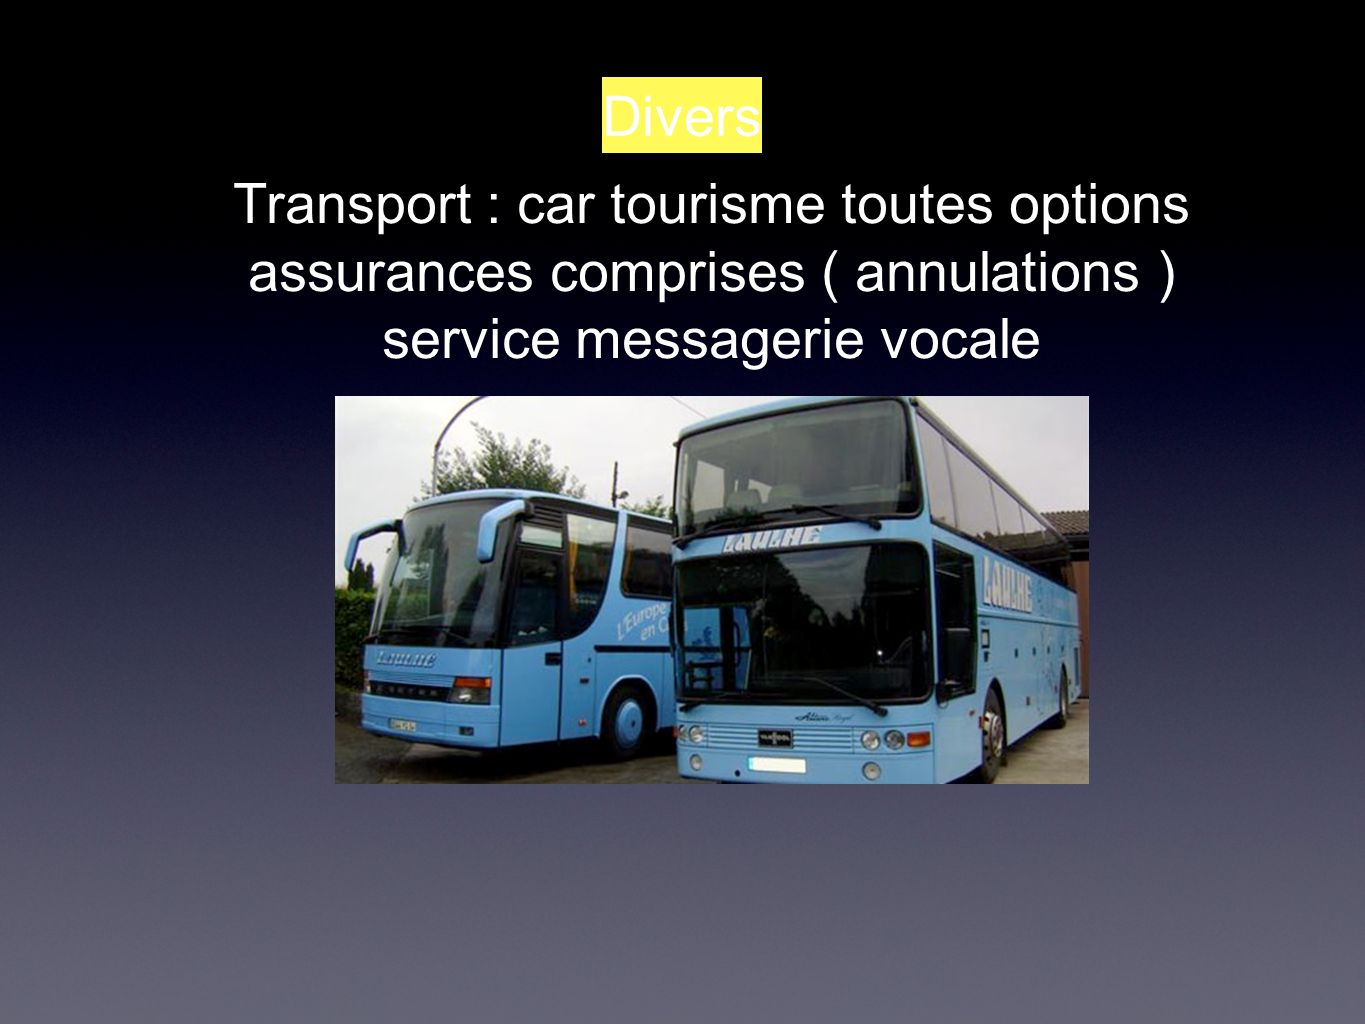 Divers Transport : car tourisme toutes options assurances comprises ( annulations ) service messagerie vocale